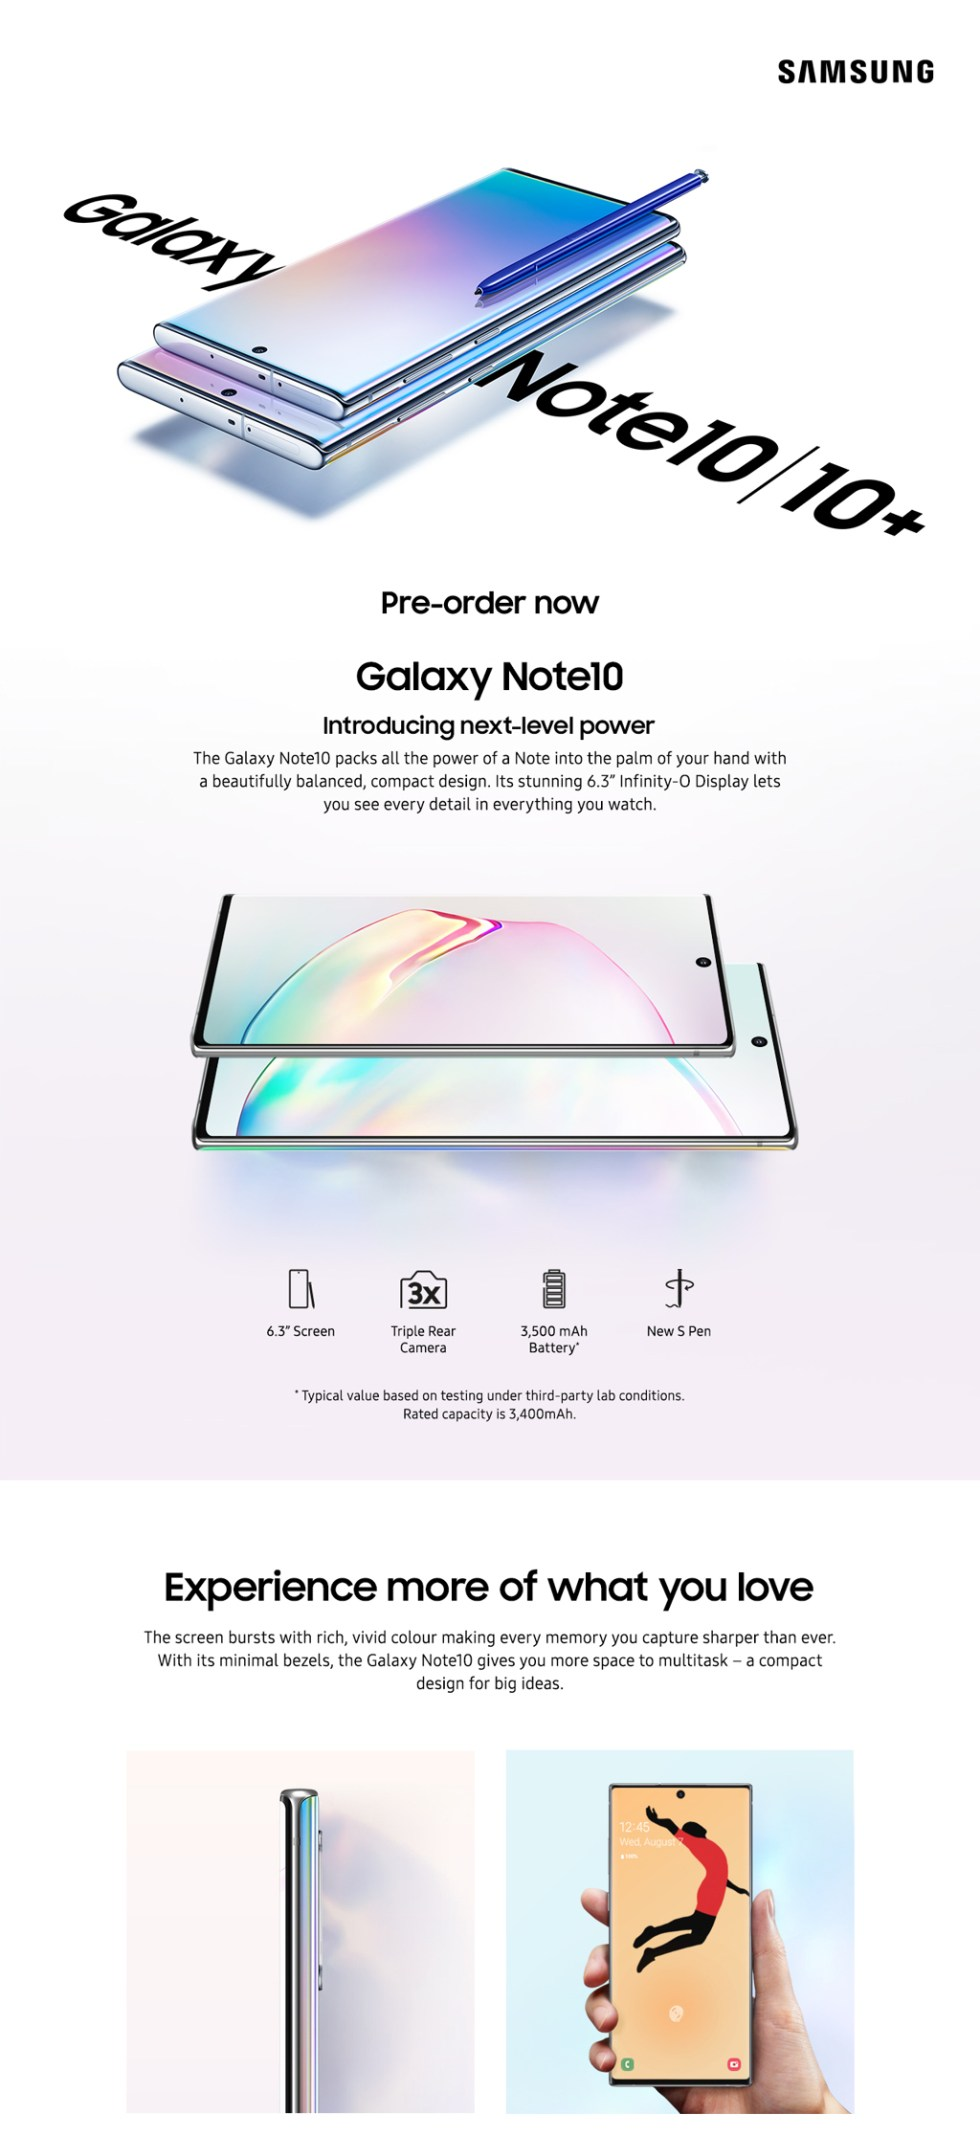 Samsung Galaxy Note10 Features